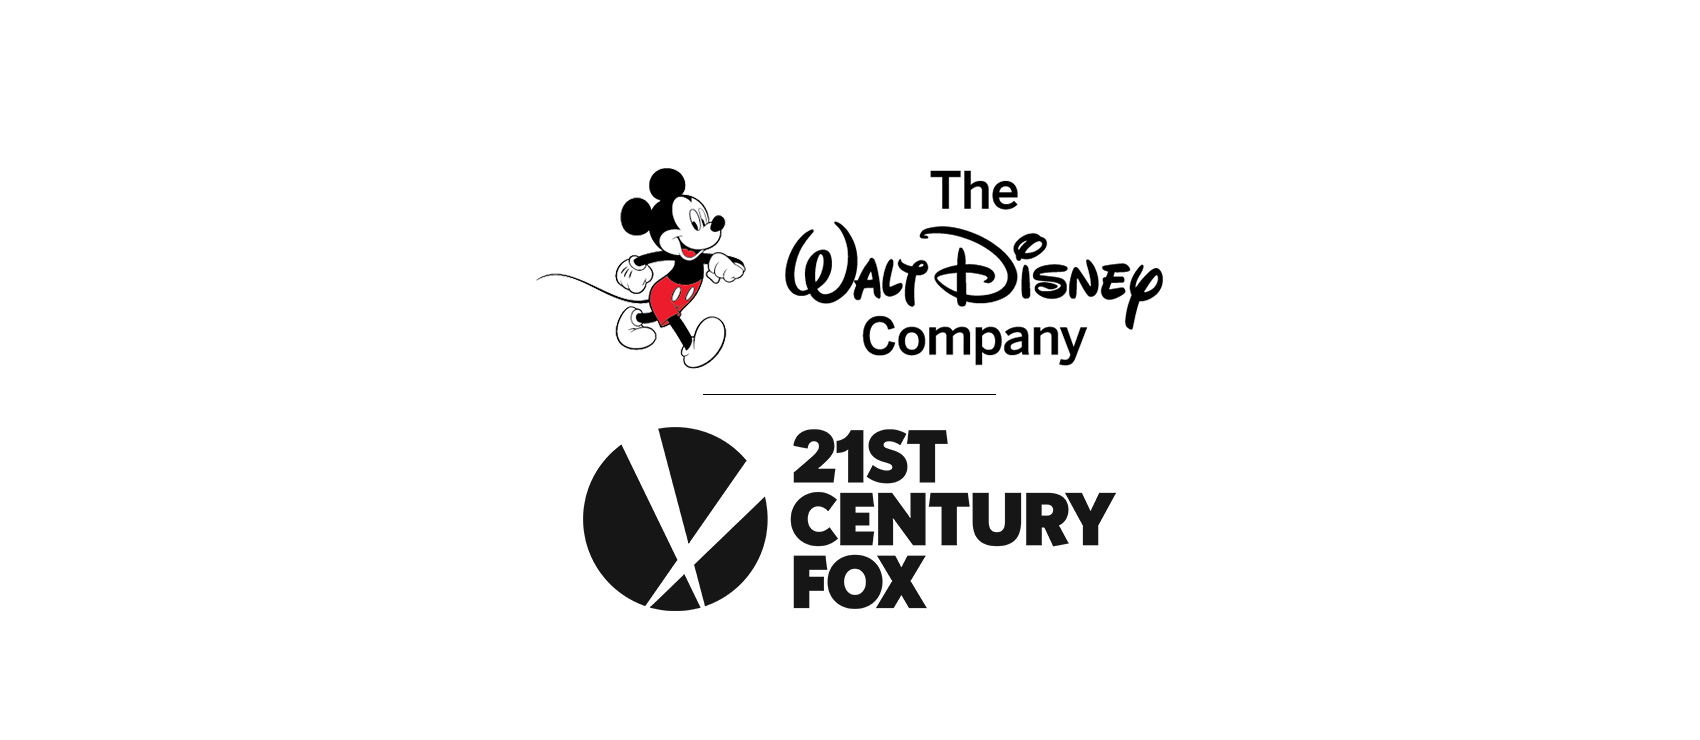 The Walt Disney Company To Acquire Twenty First Century Fox Inc After Spinoff Of Certain Businesses For 52 4 Billion In Stock The Walt Disney Company